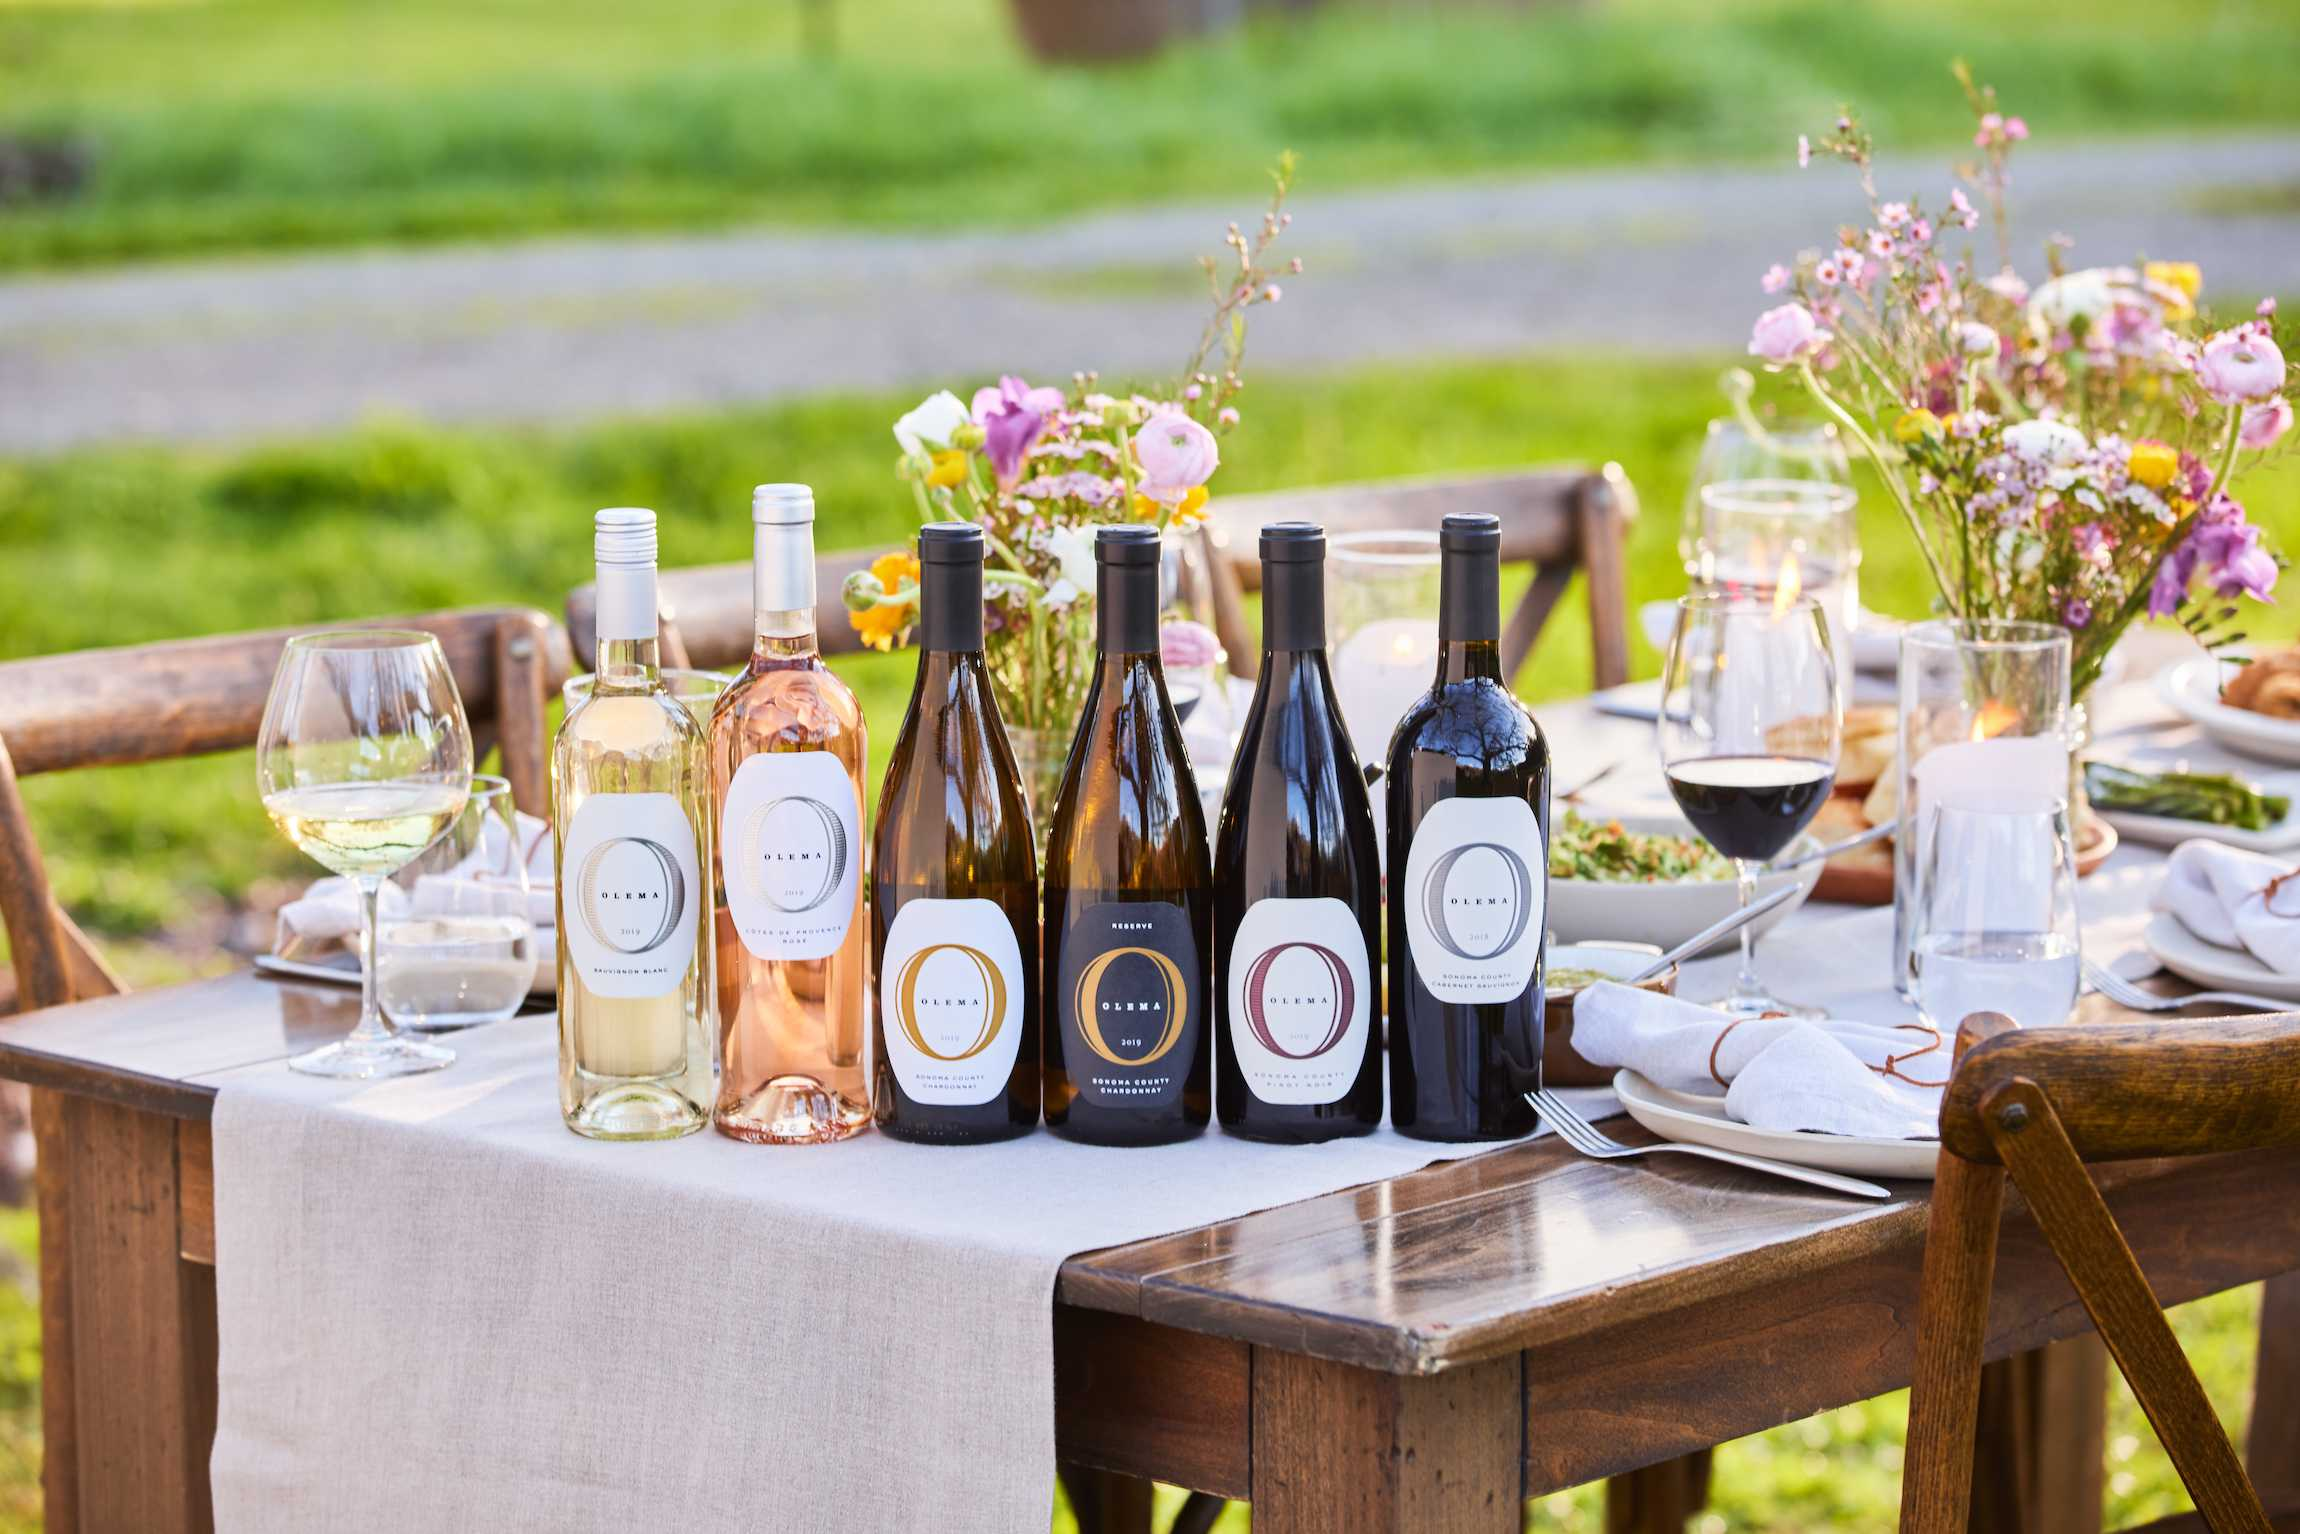 a variety of olema wines sitting on a table with wines glasses and flowers